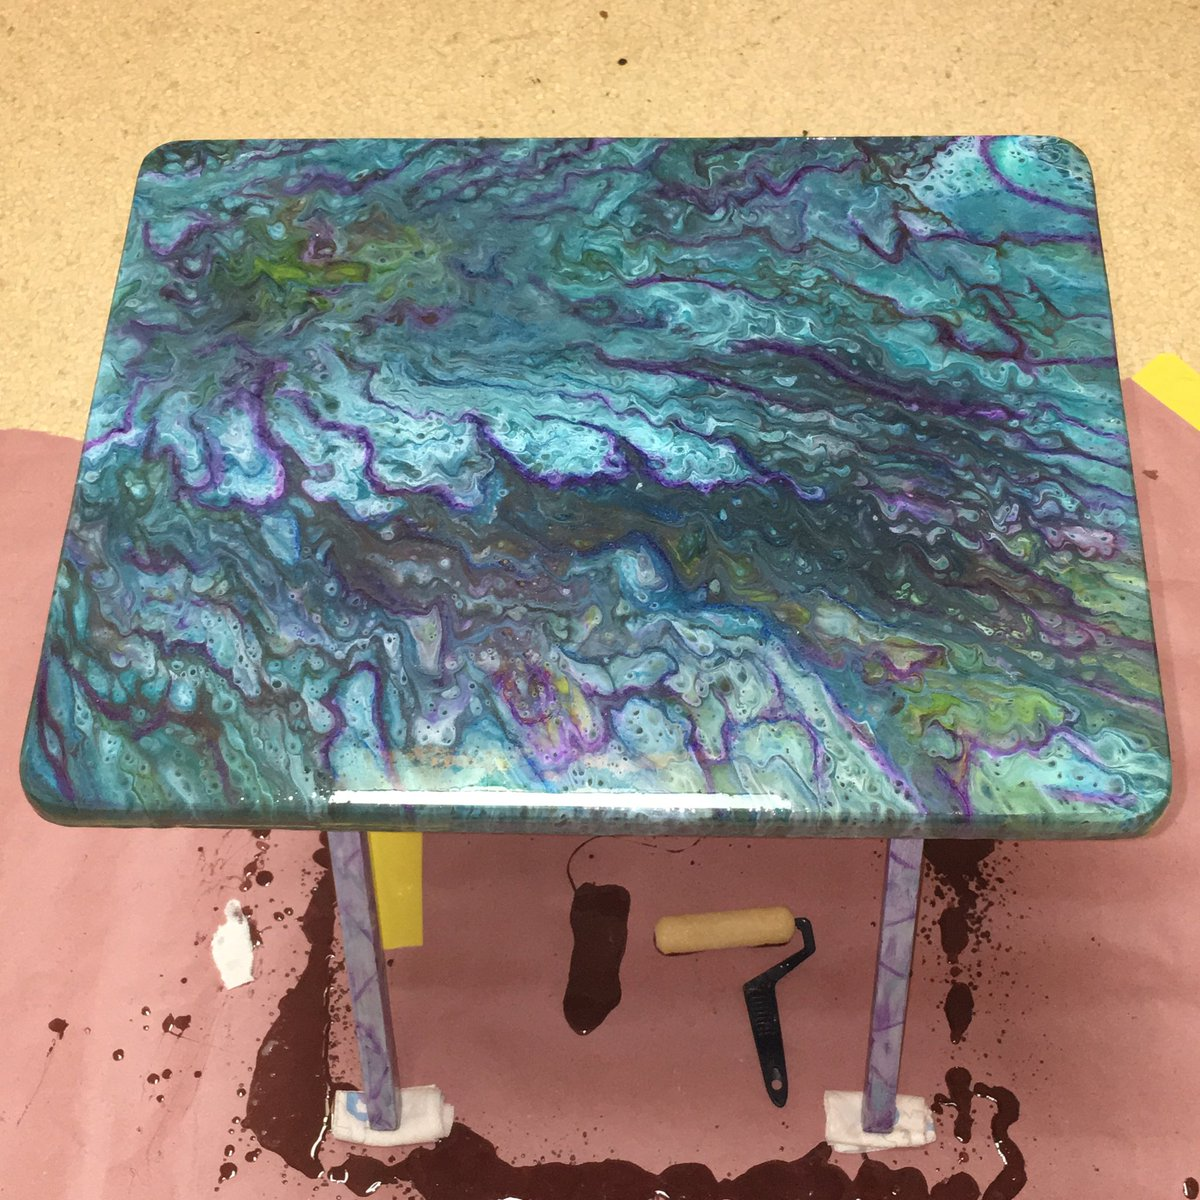 Eclectic Products On Twitter Kim Beautiful Job Refinishing This Tv Tray Msfrickentush Recycle Upcycle Woodworking Diy Unicornspit Famowood Glazecoat Https T Co 1hc2ftxvse Https T Co Pm7baqlr9z Https T Co Pbcbgeb6i7